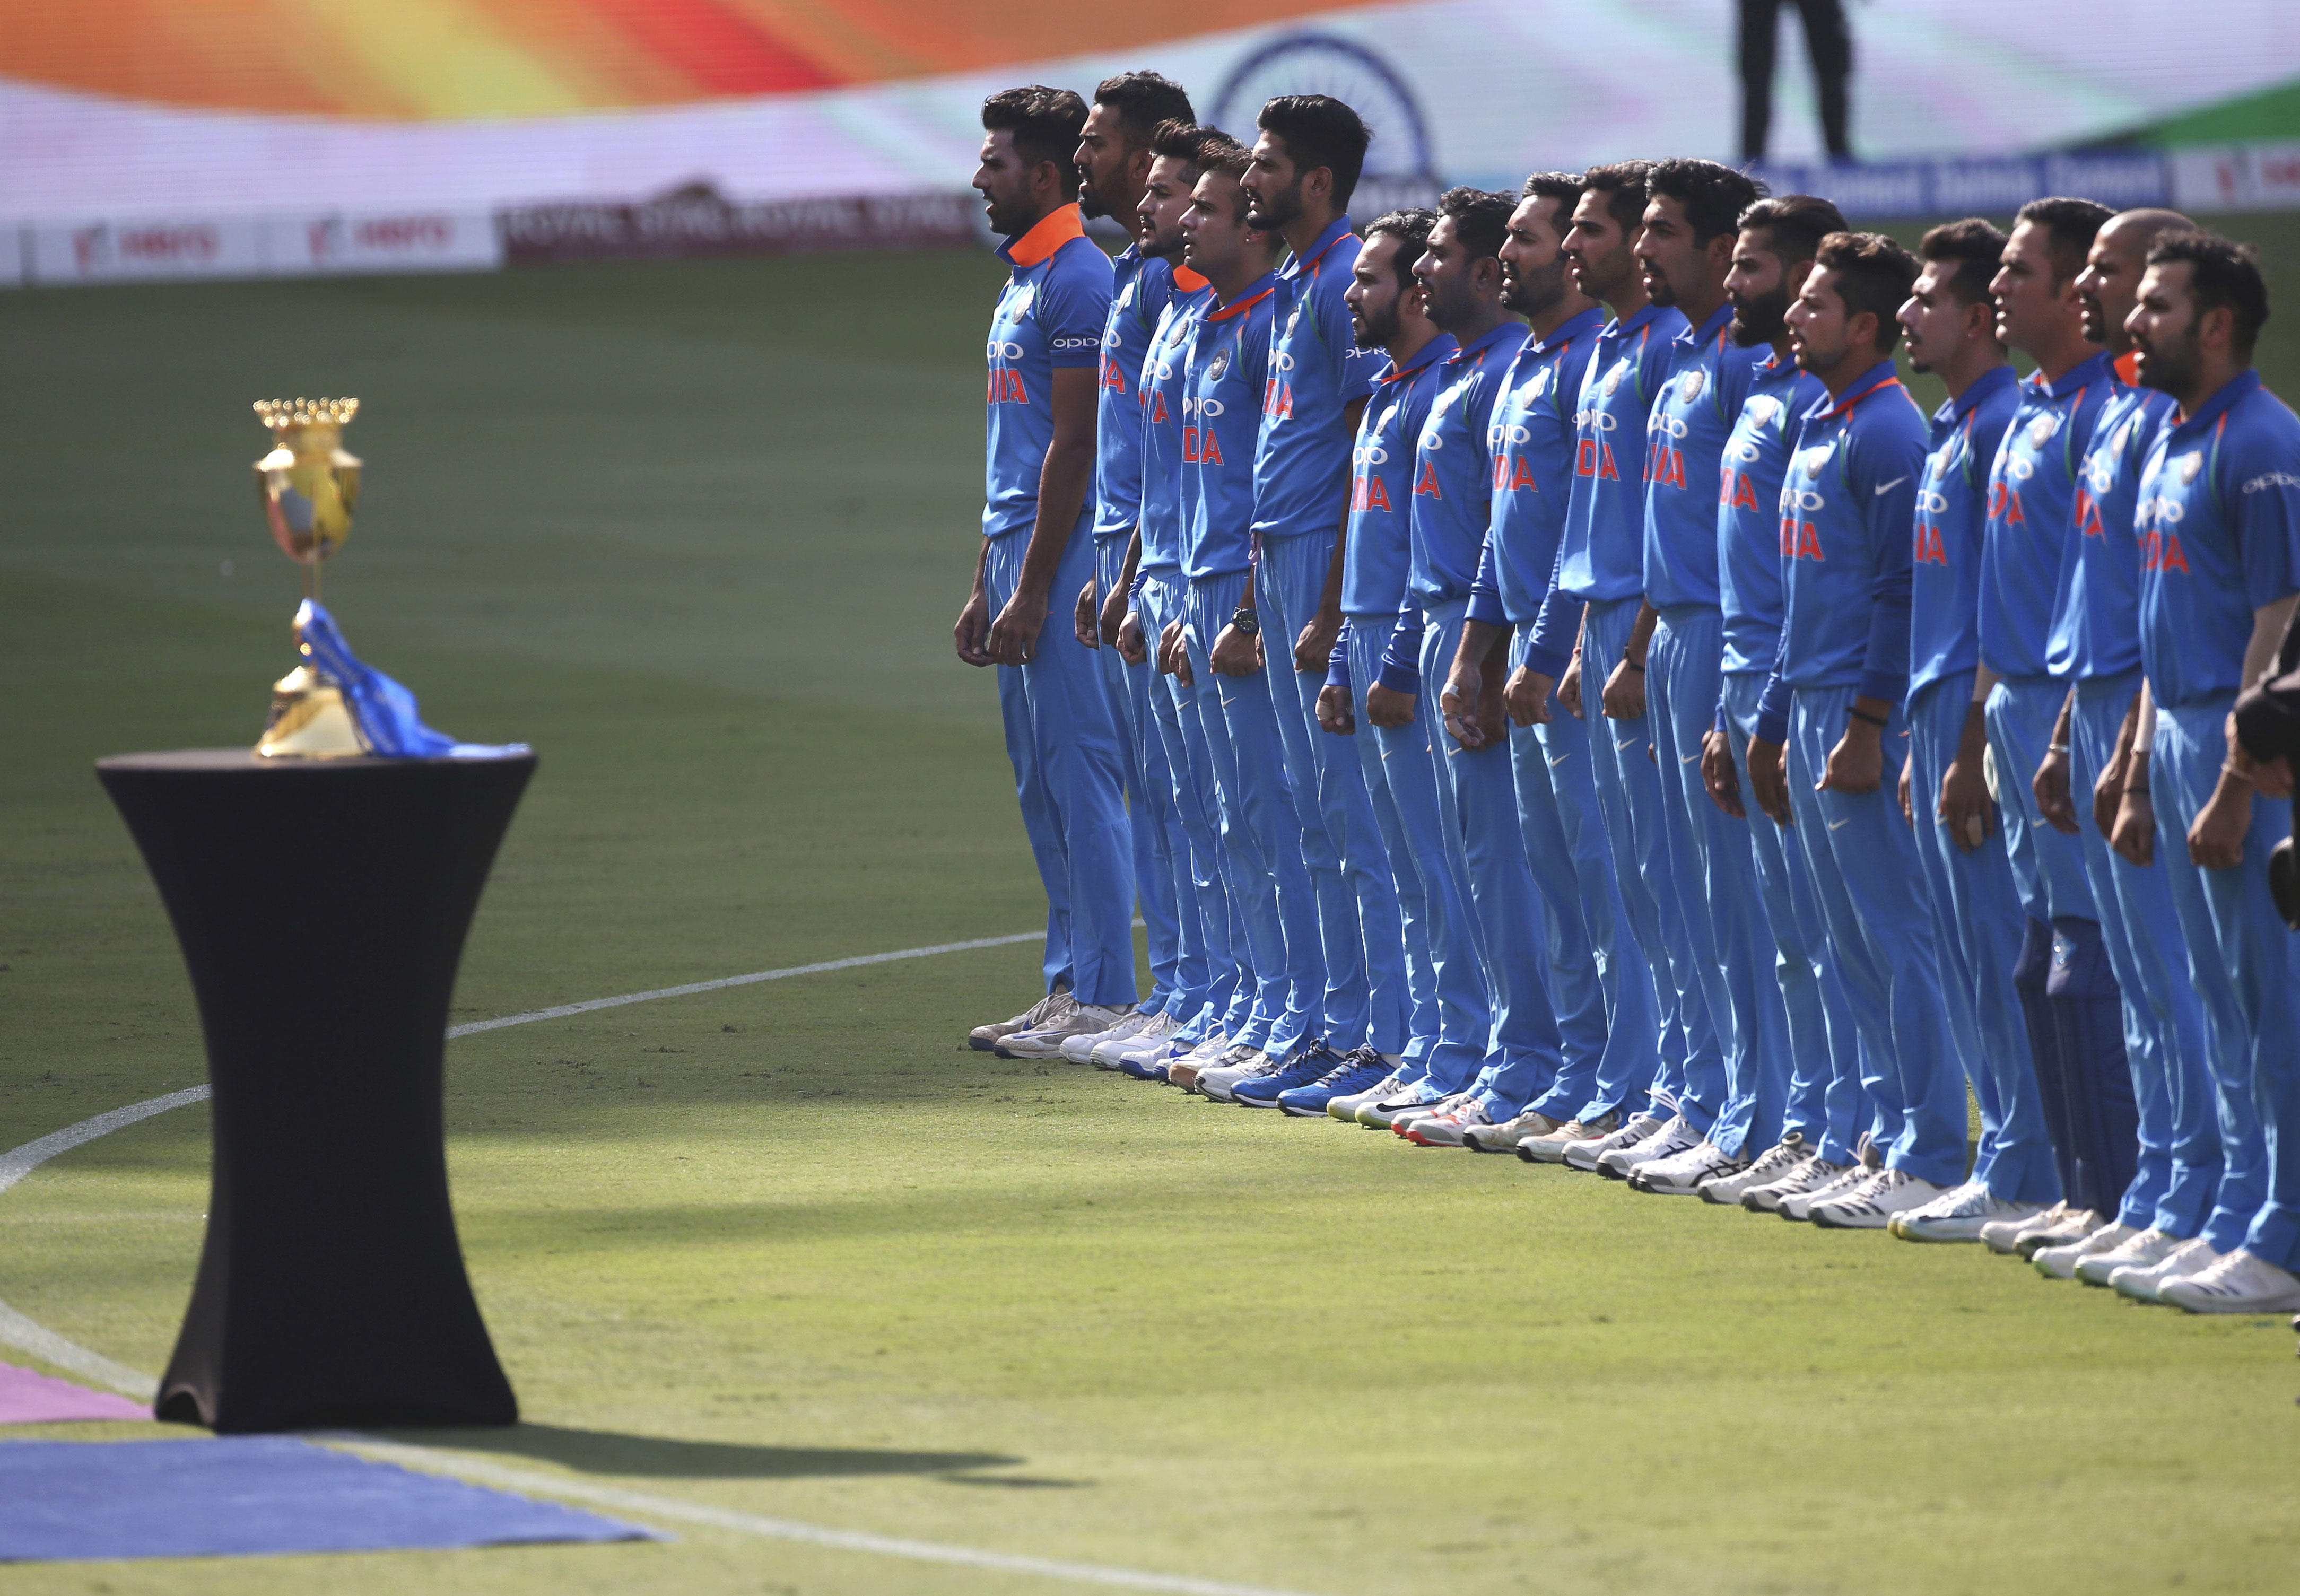 Members of the Indian team stand for their national anthem before the start of the final one day international cricket match of Asia Cup between India and Bangladesh, in Dubai, United Arab Emirates - AP